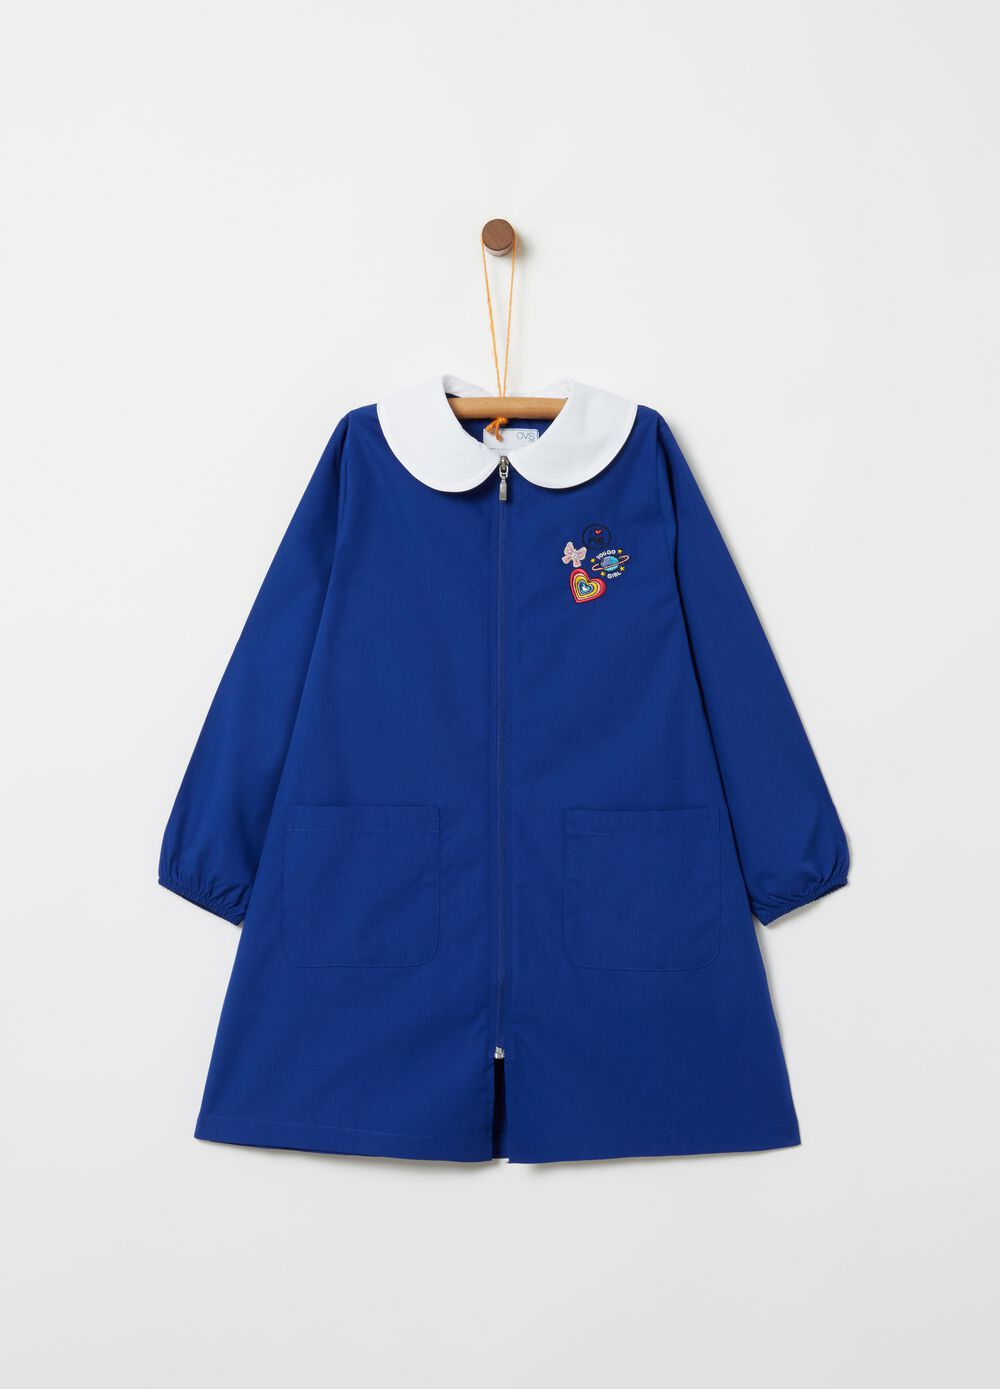 School smock with bluff collar, pockets and zip